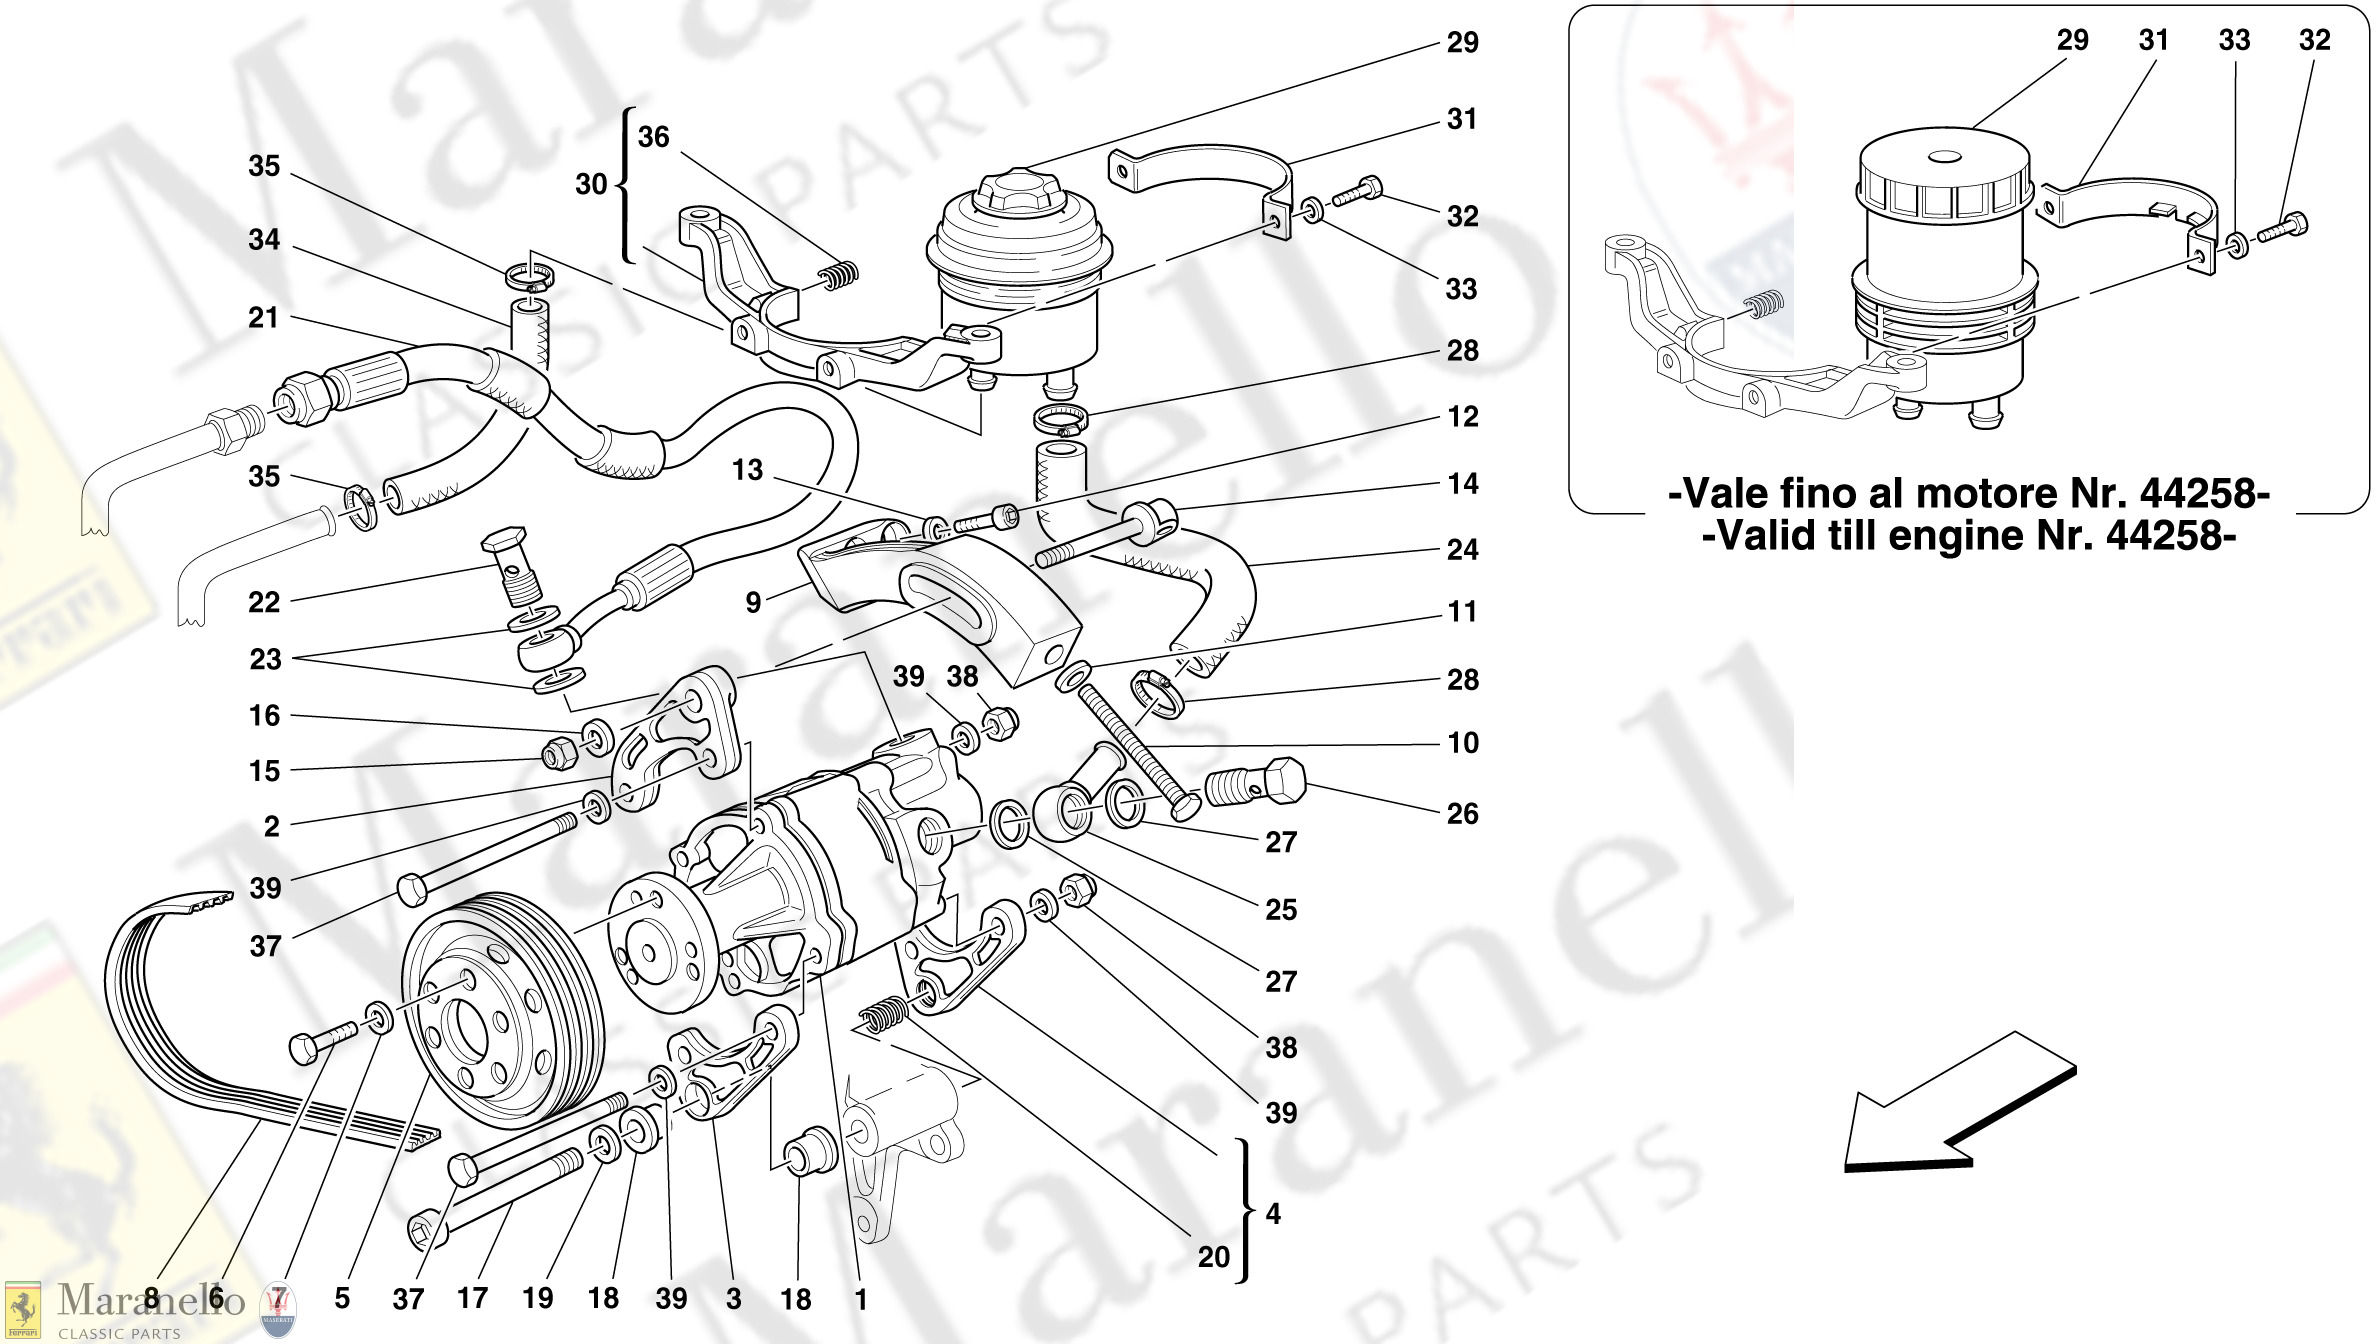 047 - Hydraulic Steering Pump And Tank